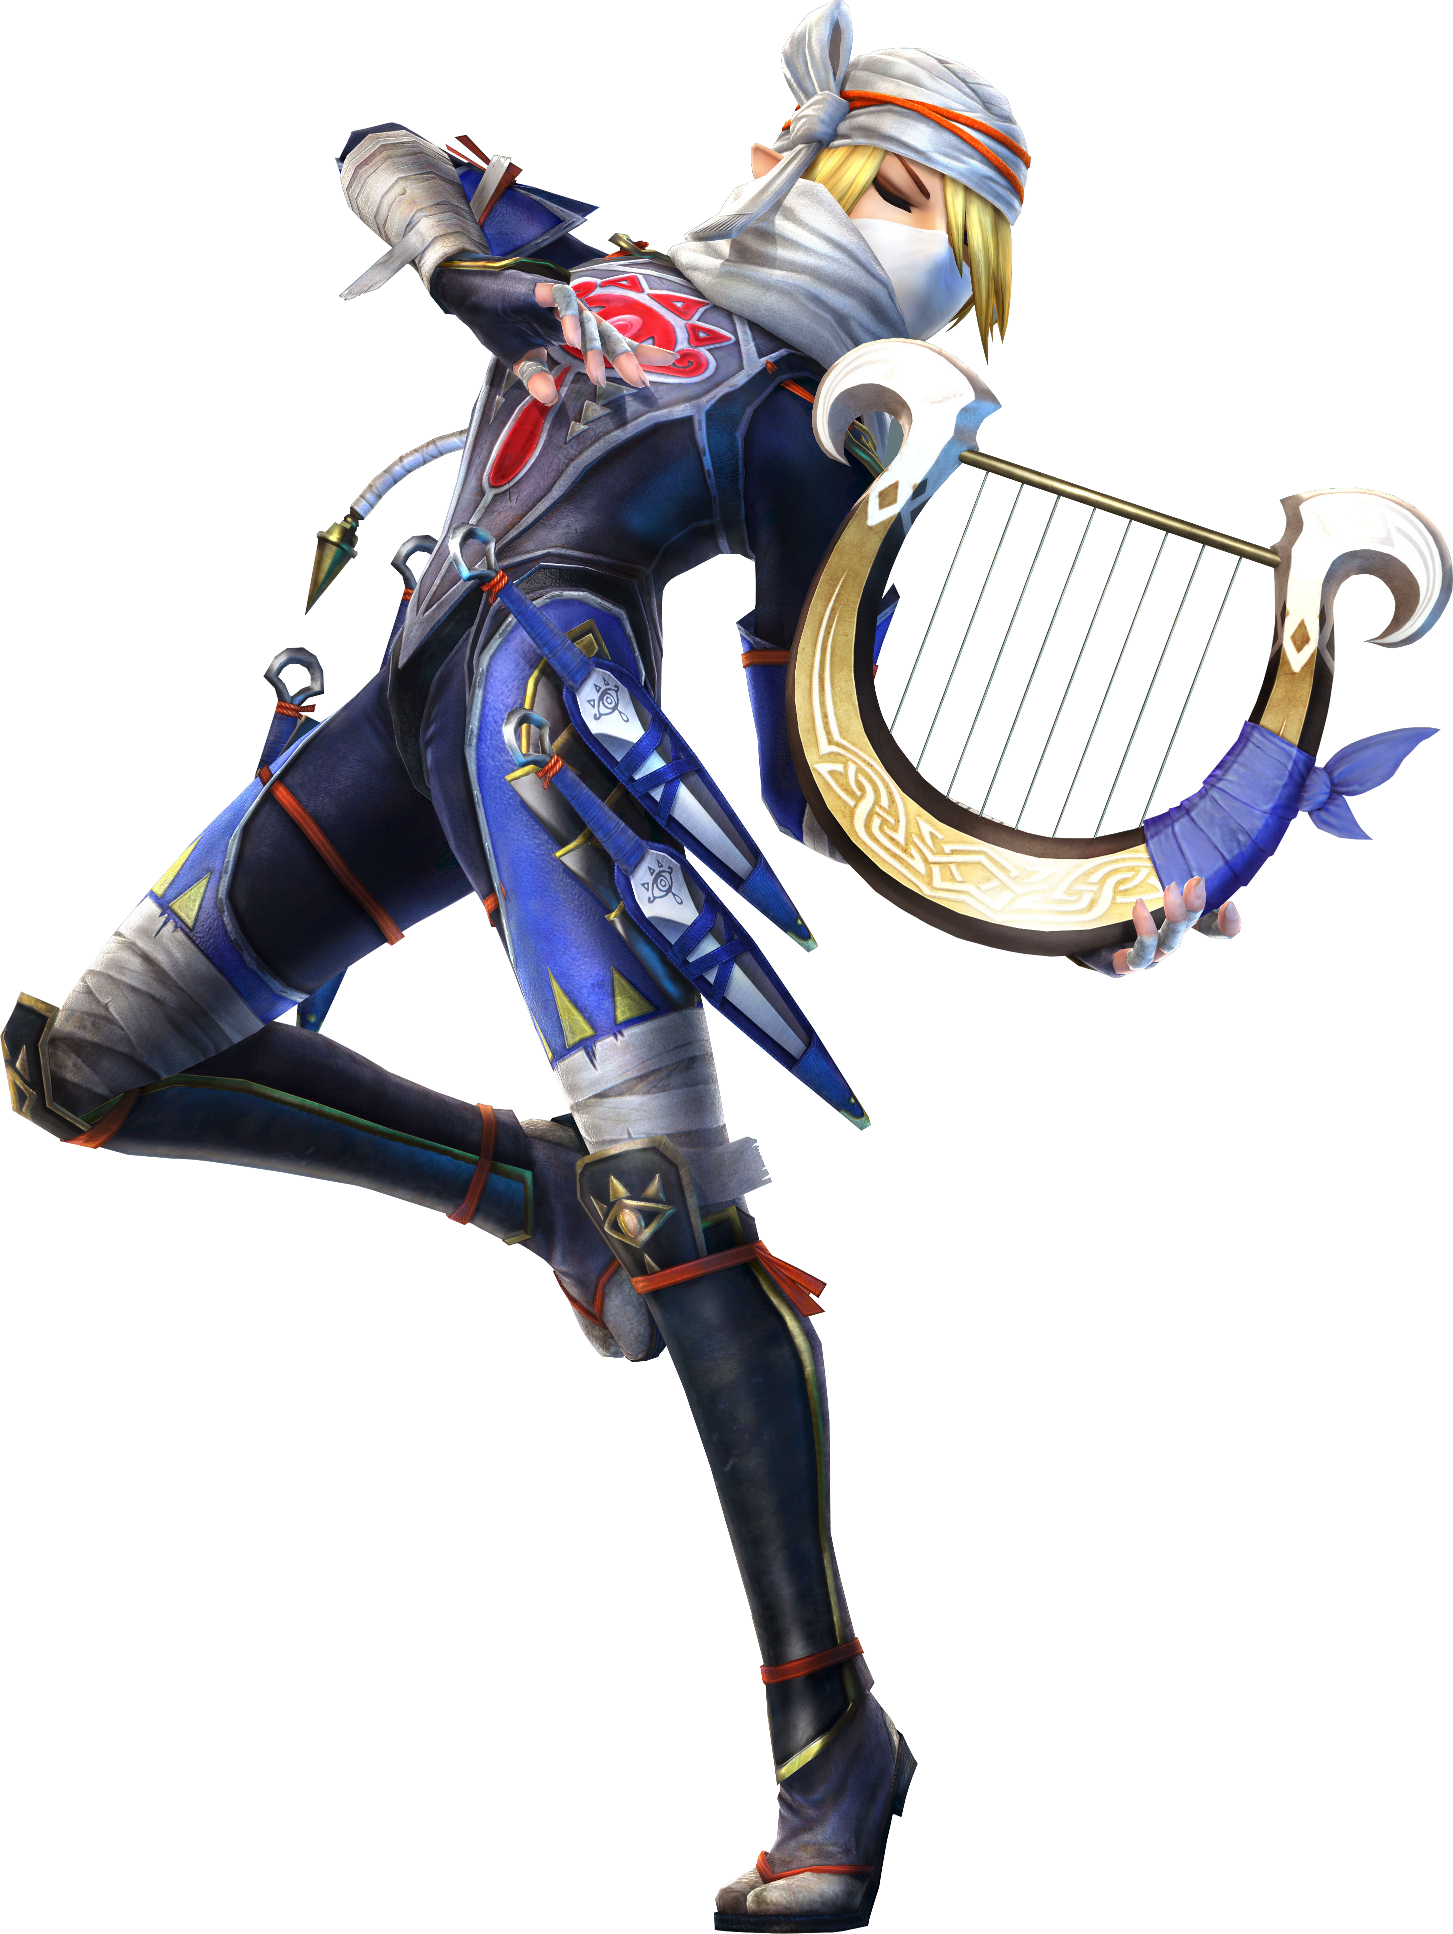 Is Sheik And Zelda The Same Person